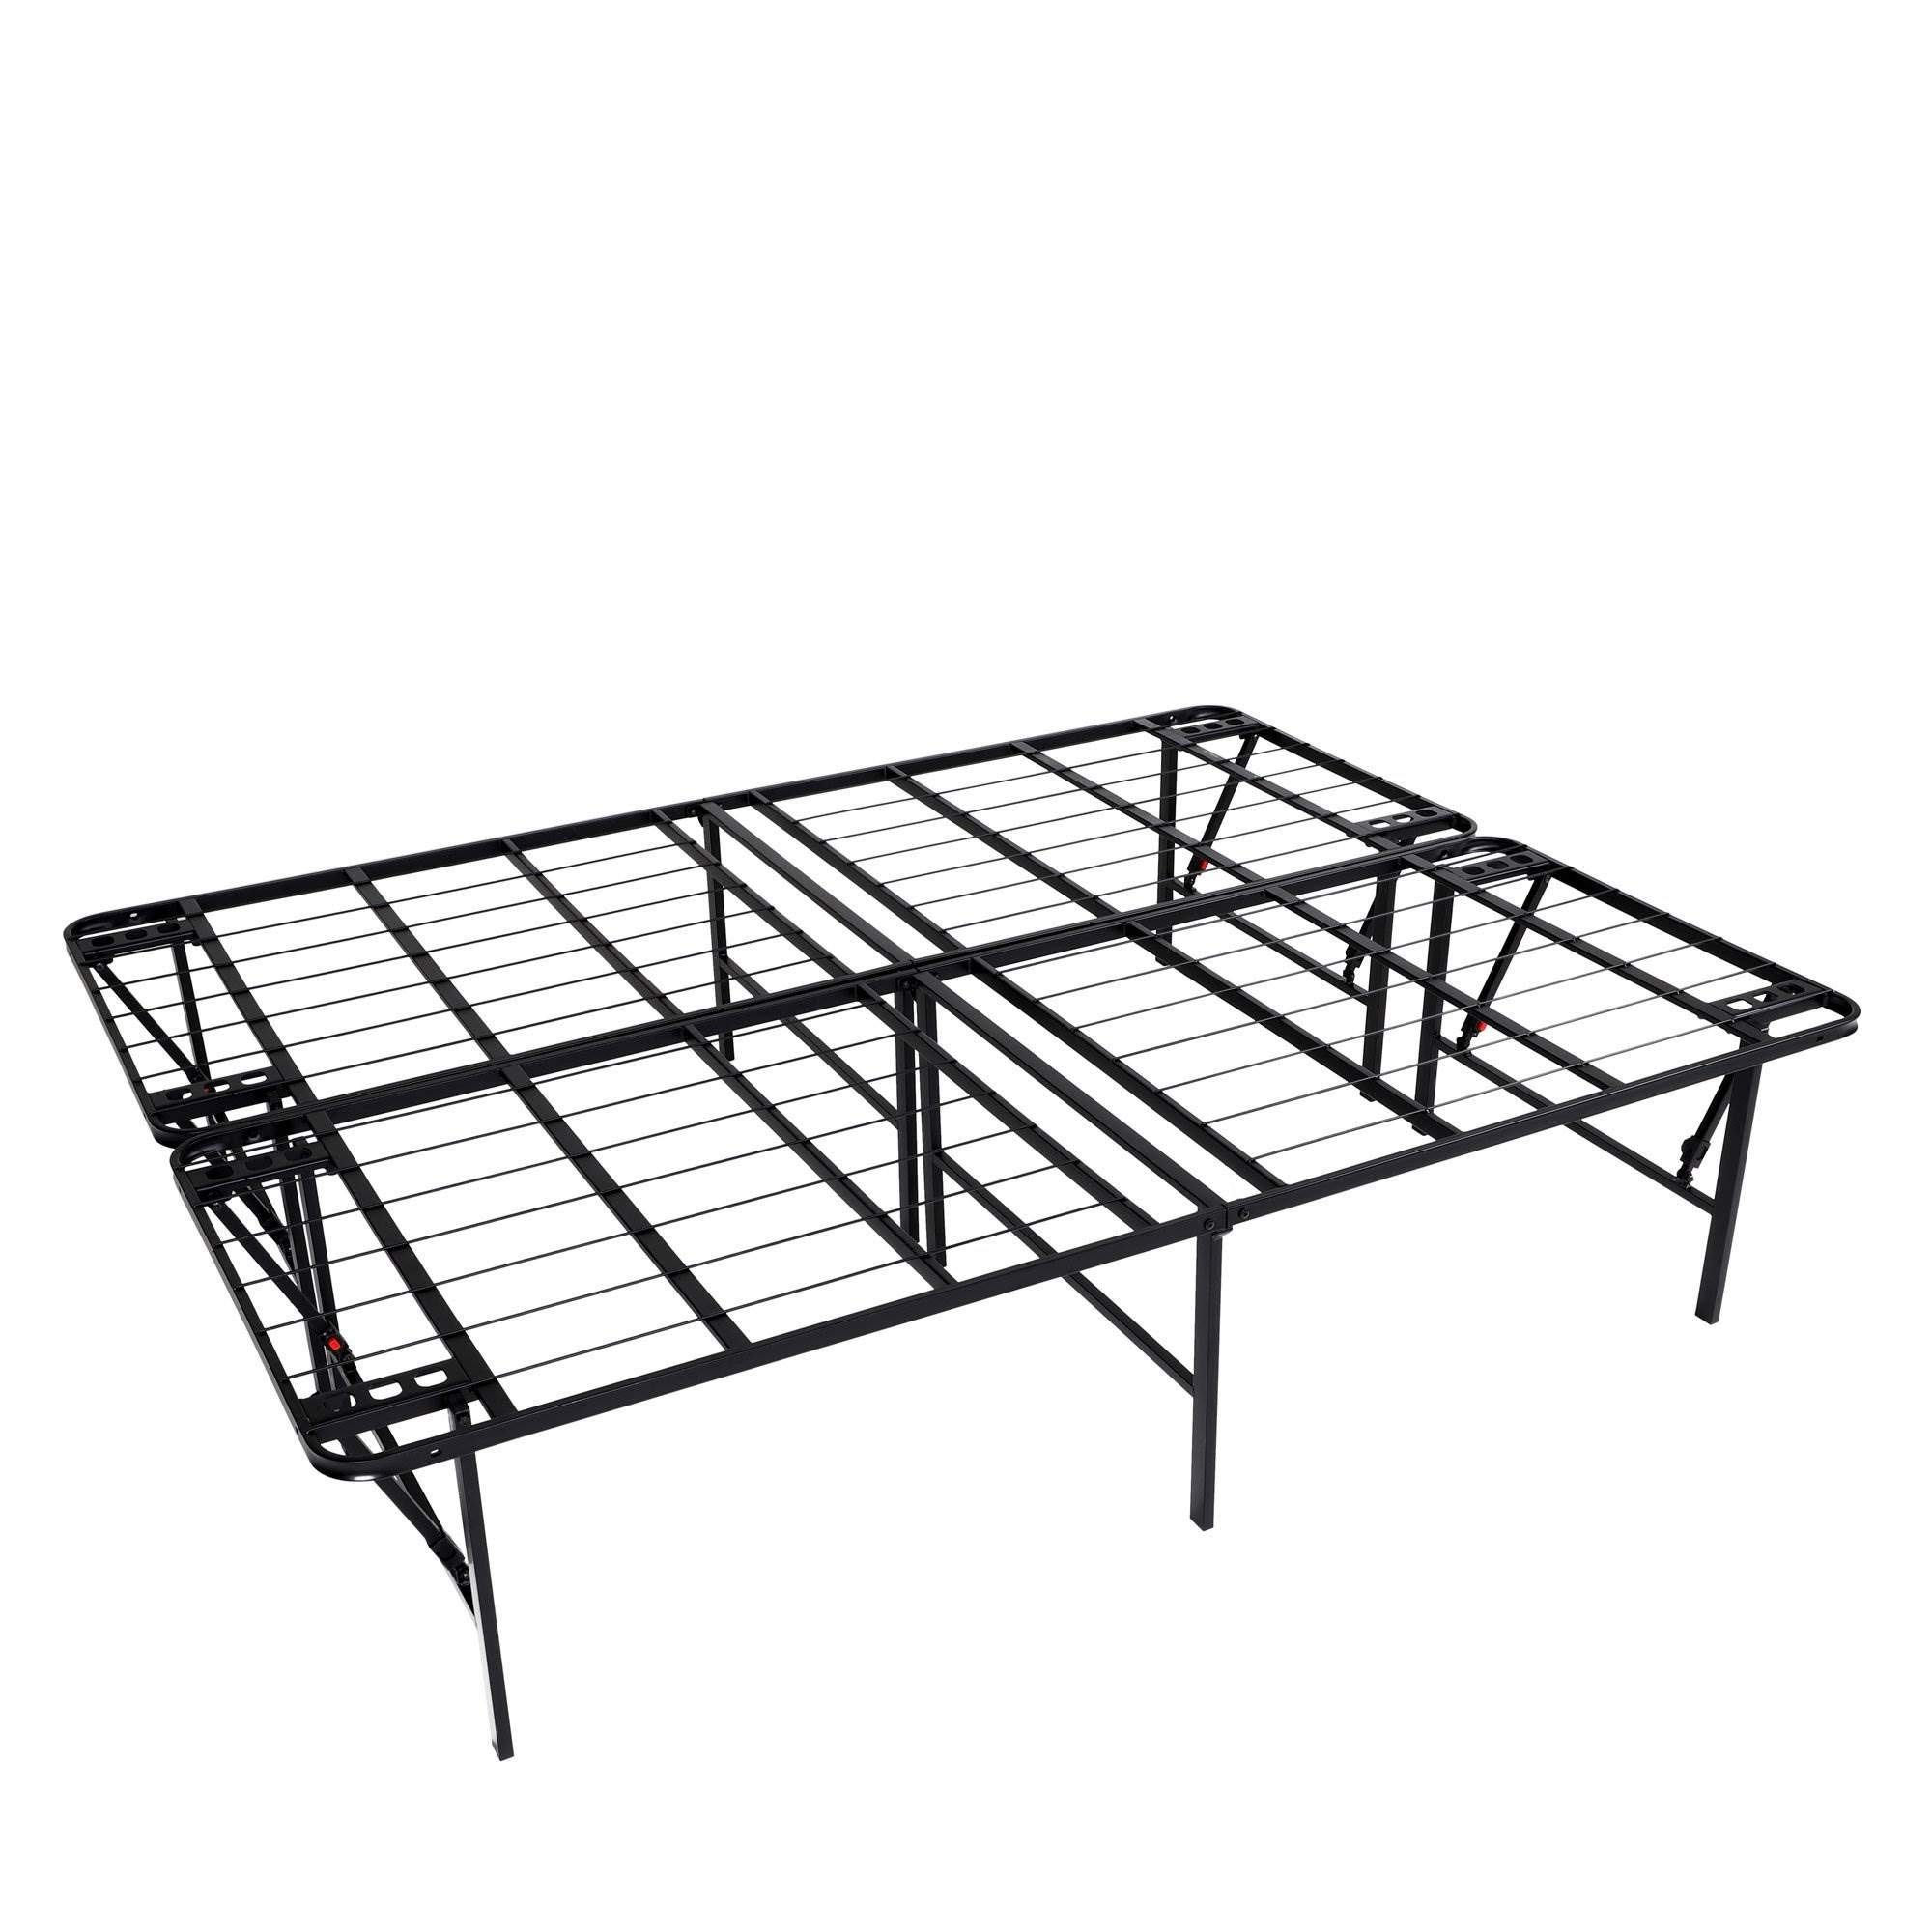 intelliBASE Lightweight Easy Set Up Bifold Platform Black Metal Bed Frame, Queen by intelliBASE